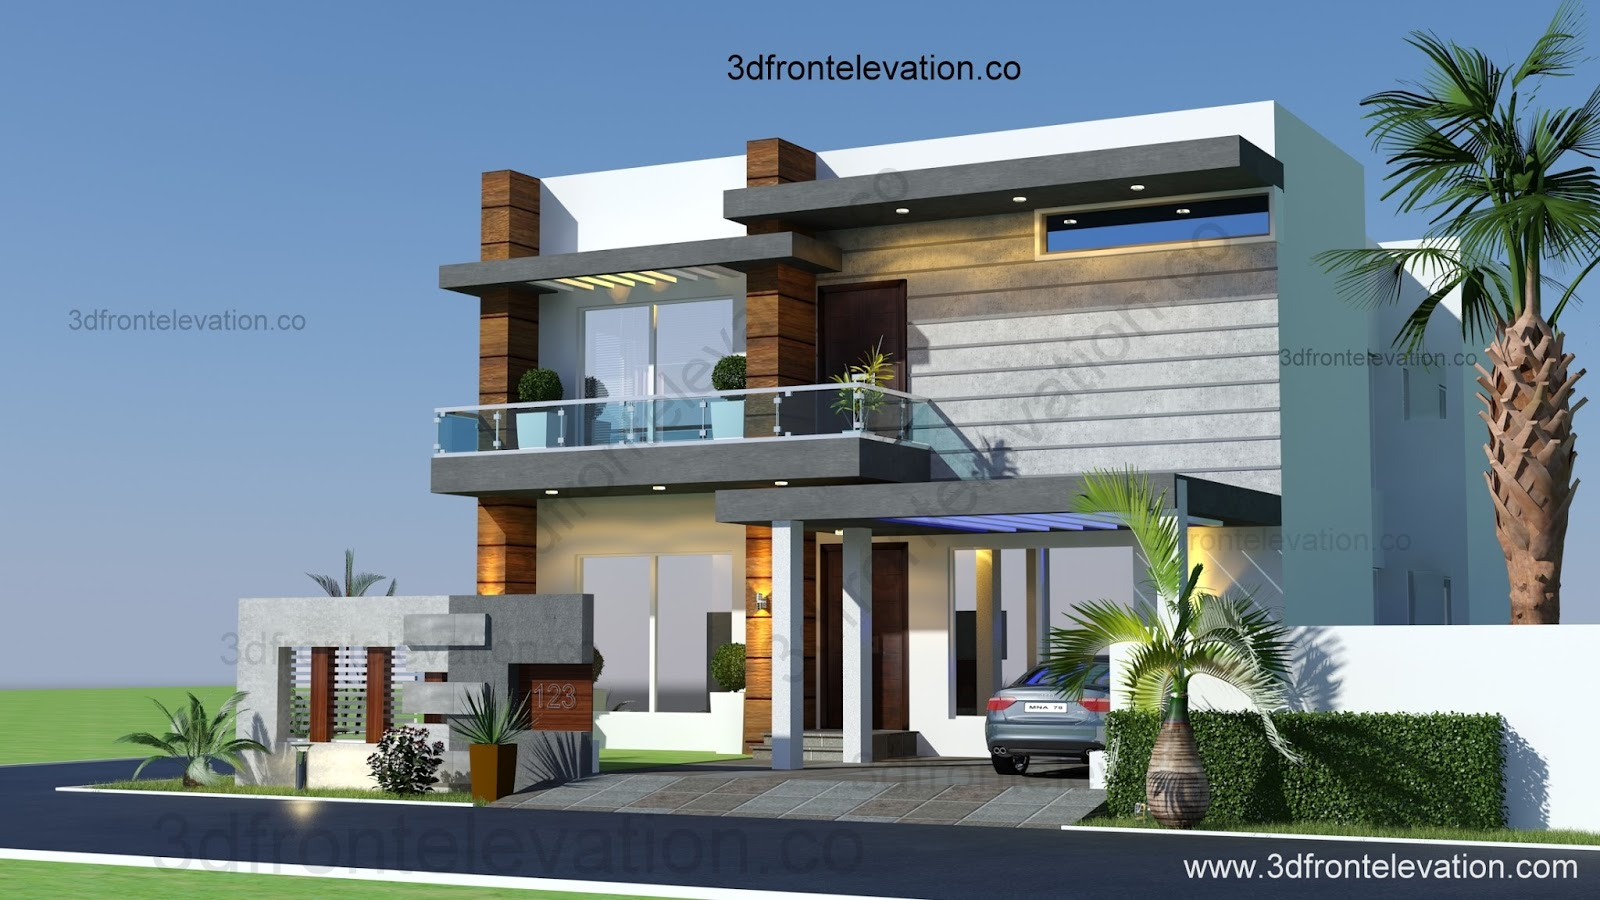 Front Elevation Of 7 Marla Houses : D front elevation marla houses design islamabad